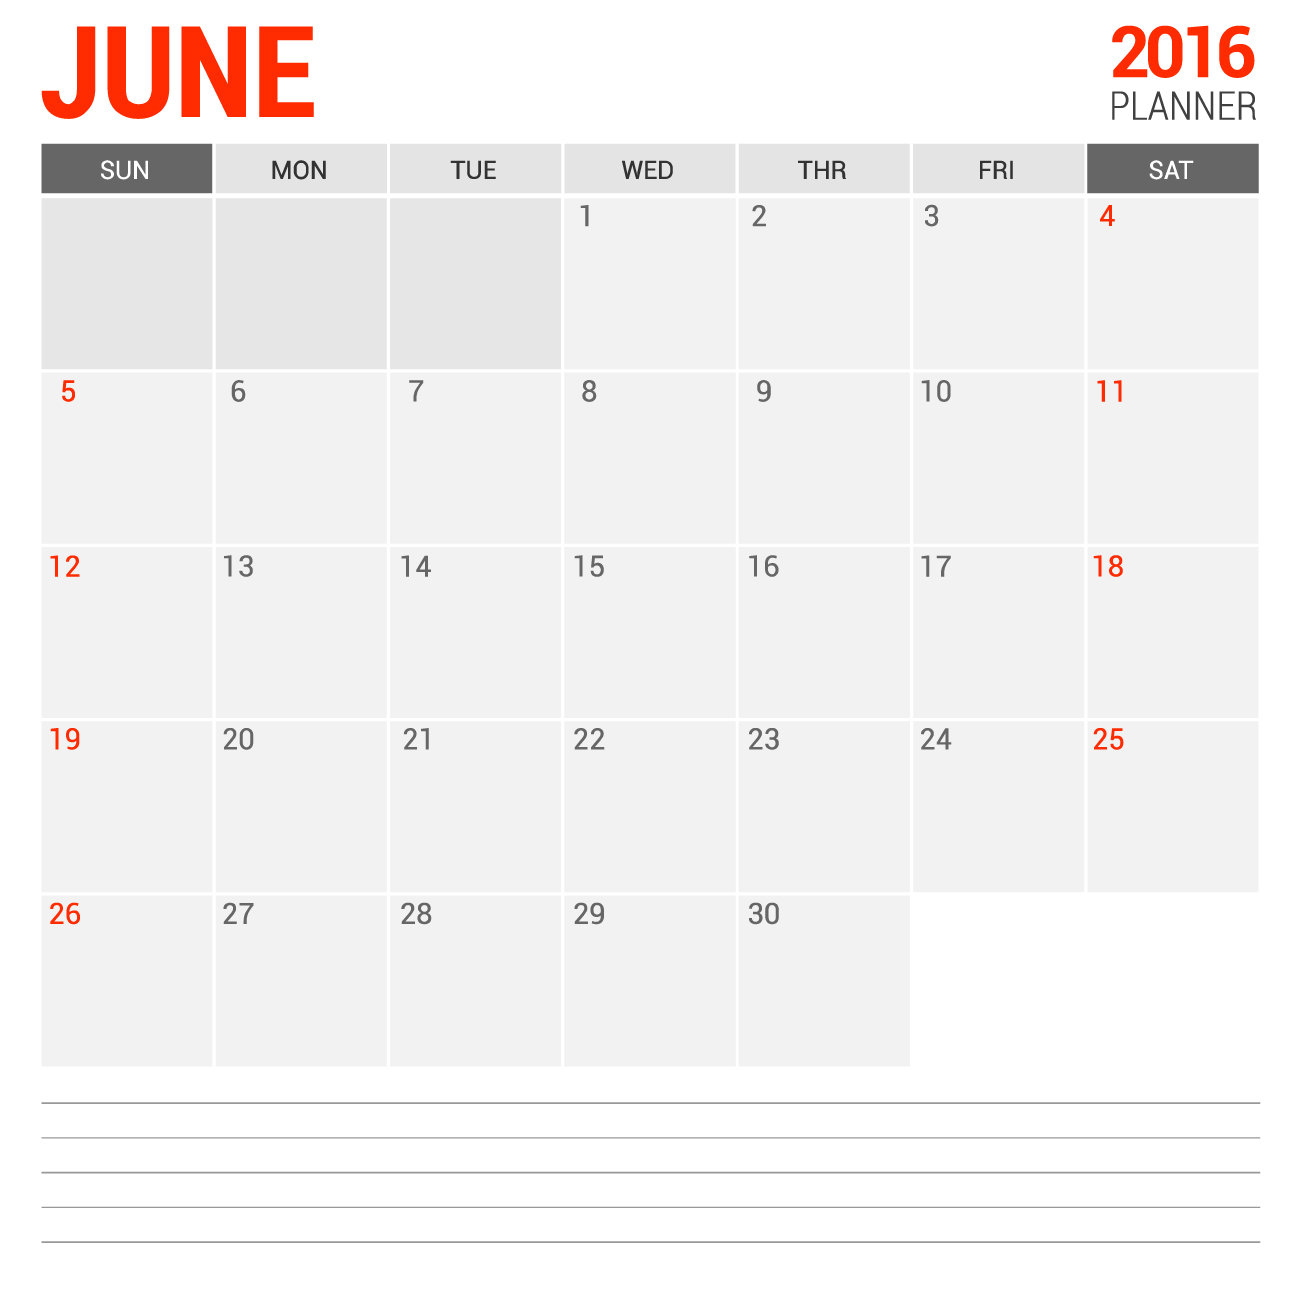 Blank calendar printable for June 2016 with notes